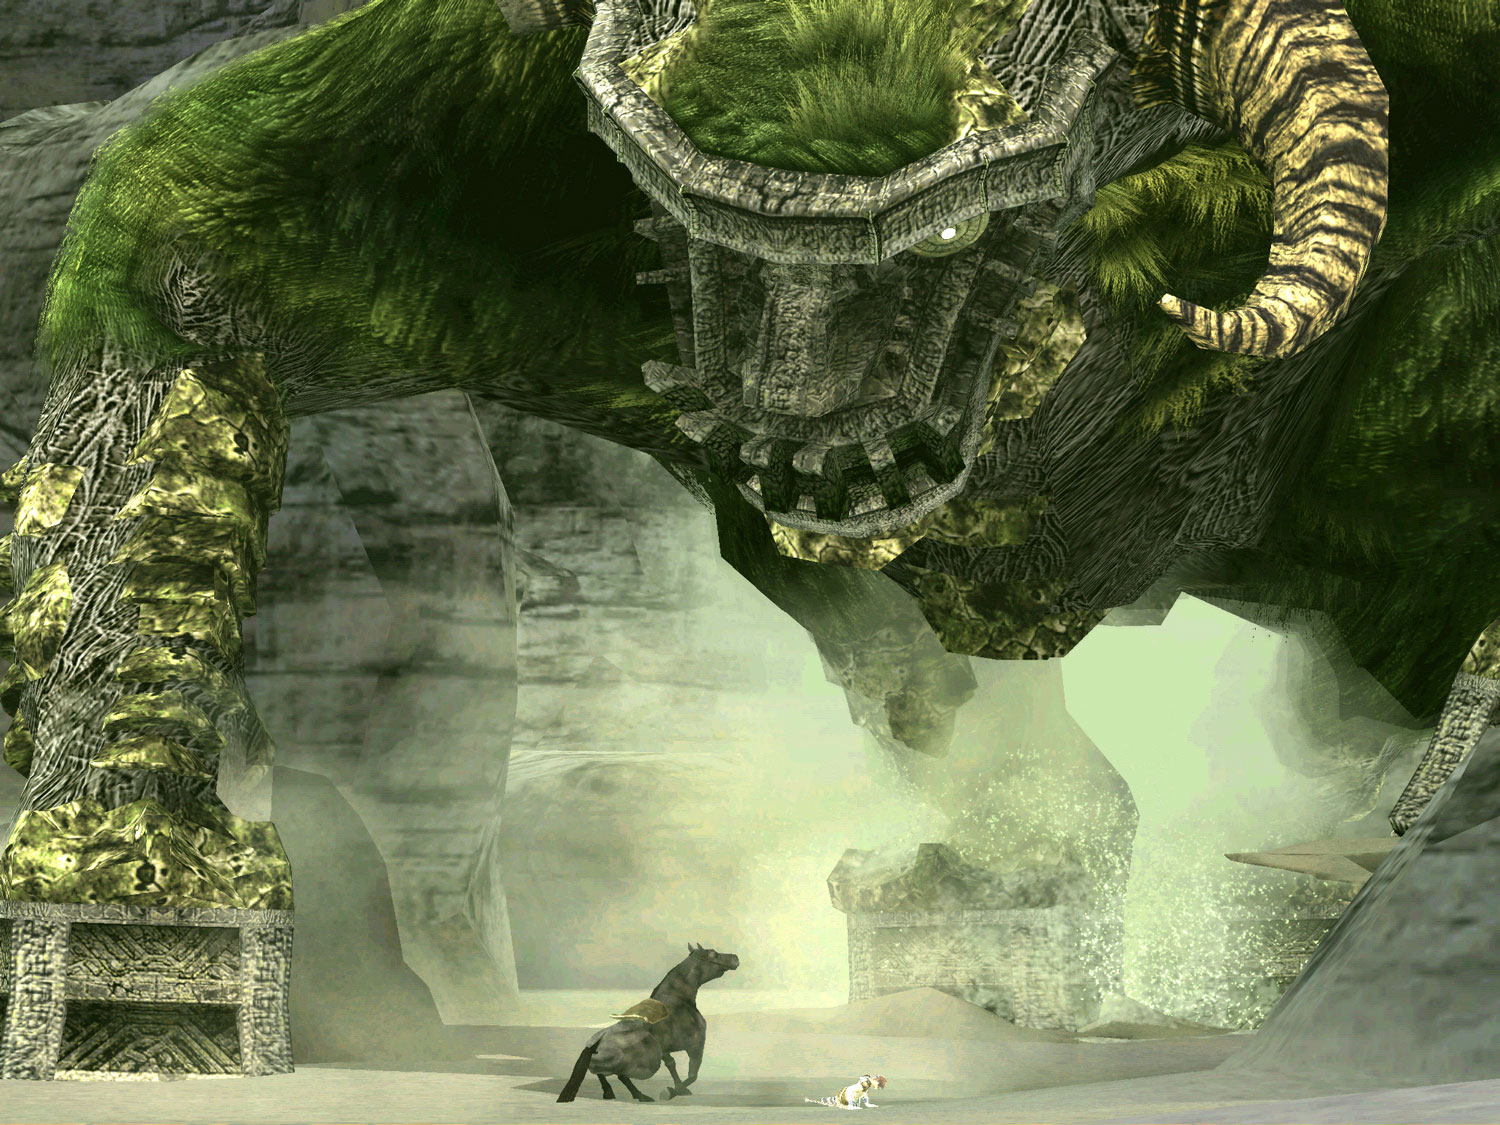 Annunciato il Remake di Shadow of the Colossus